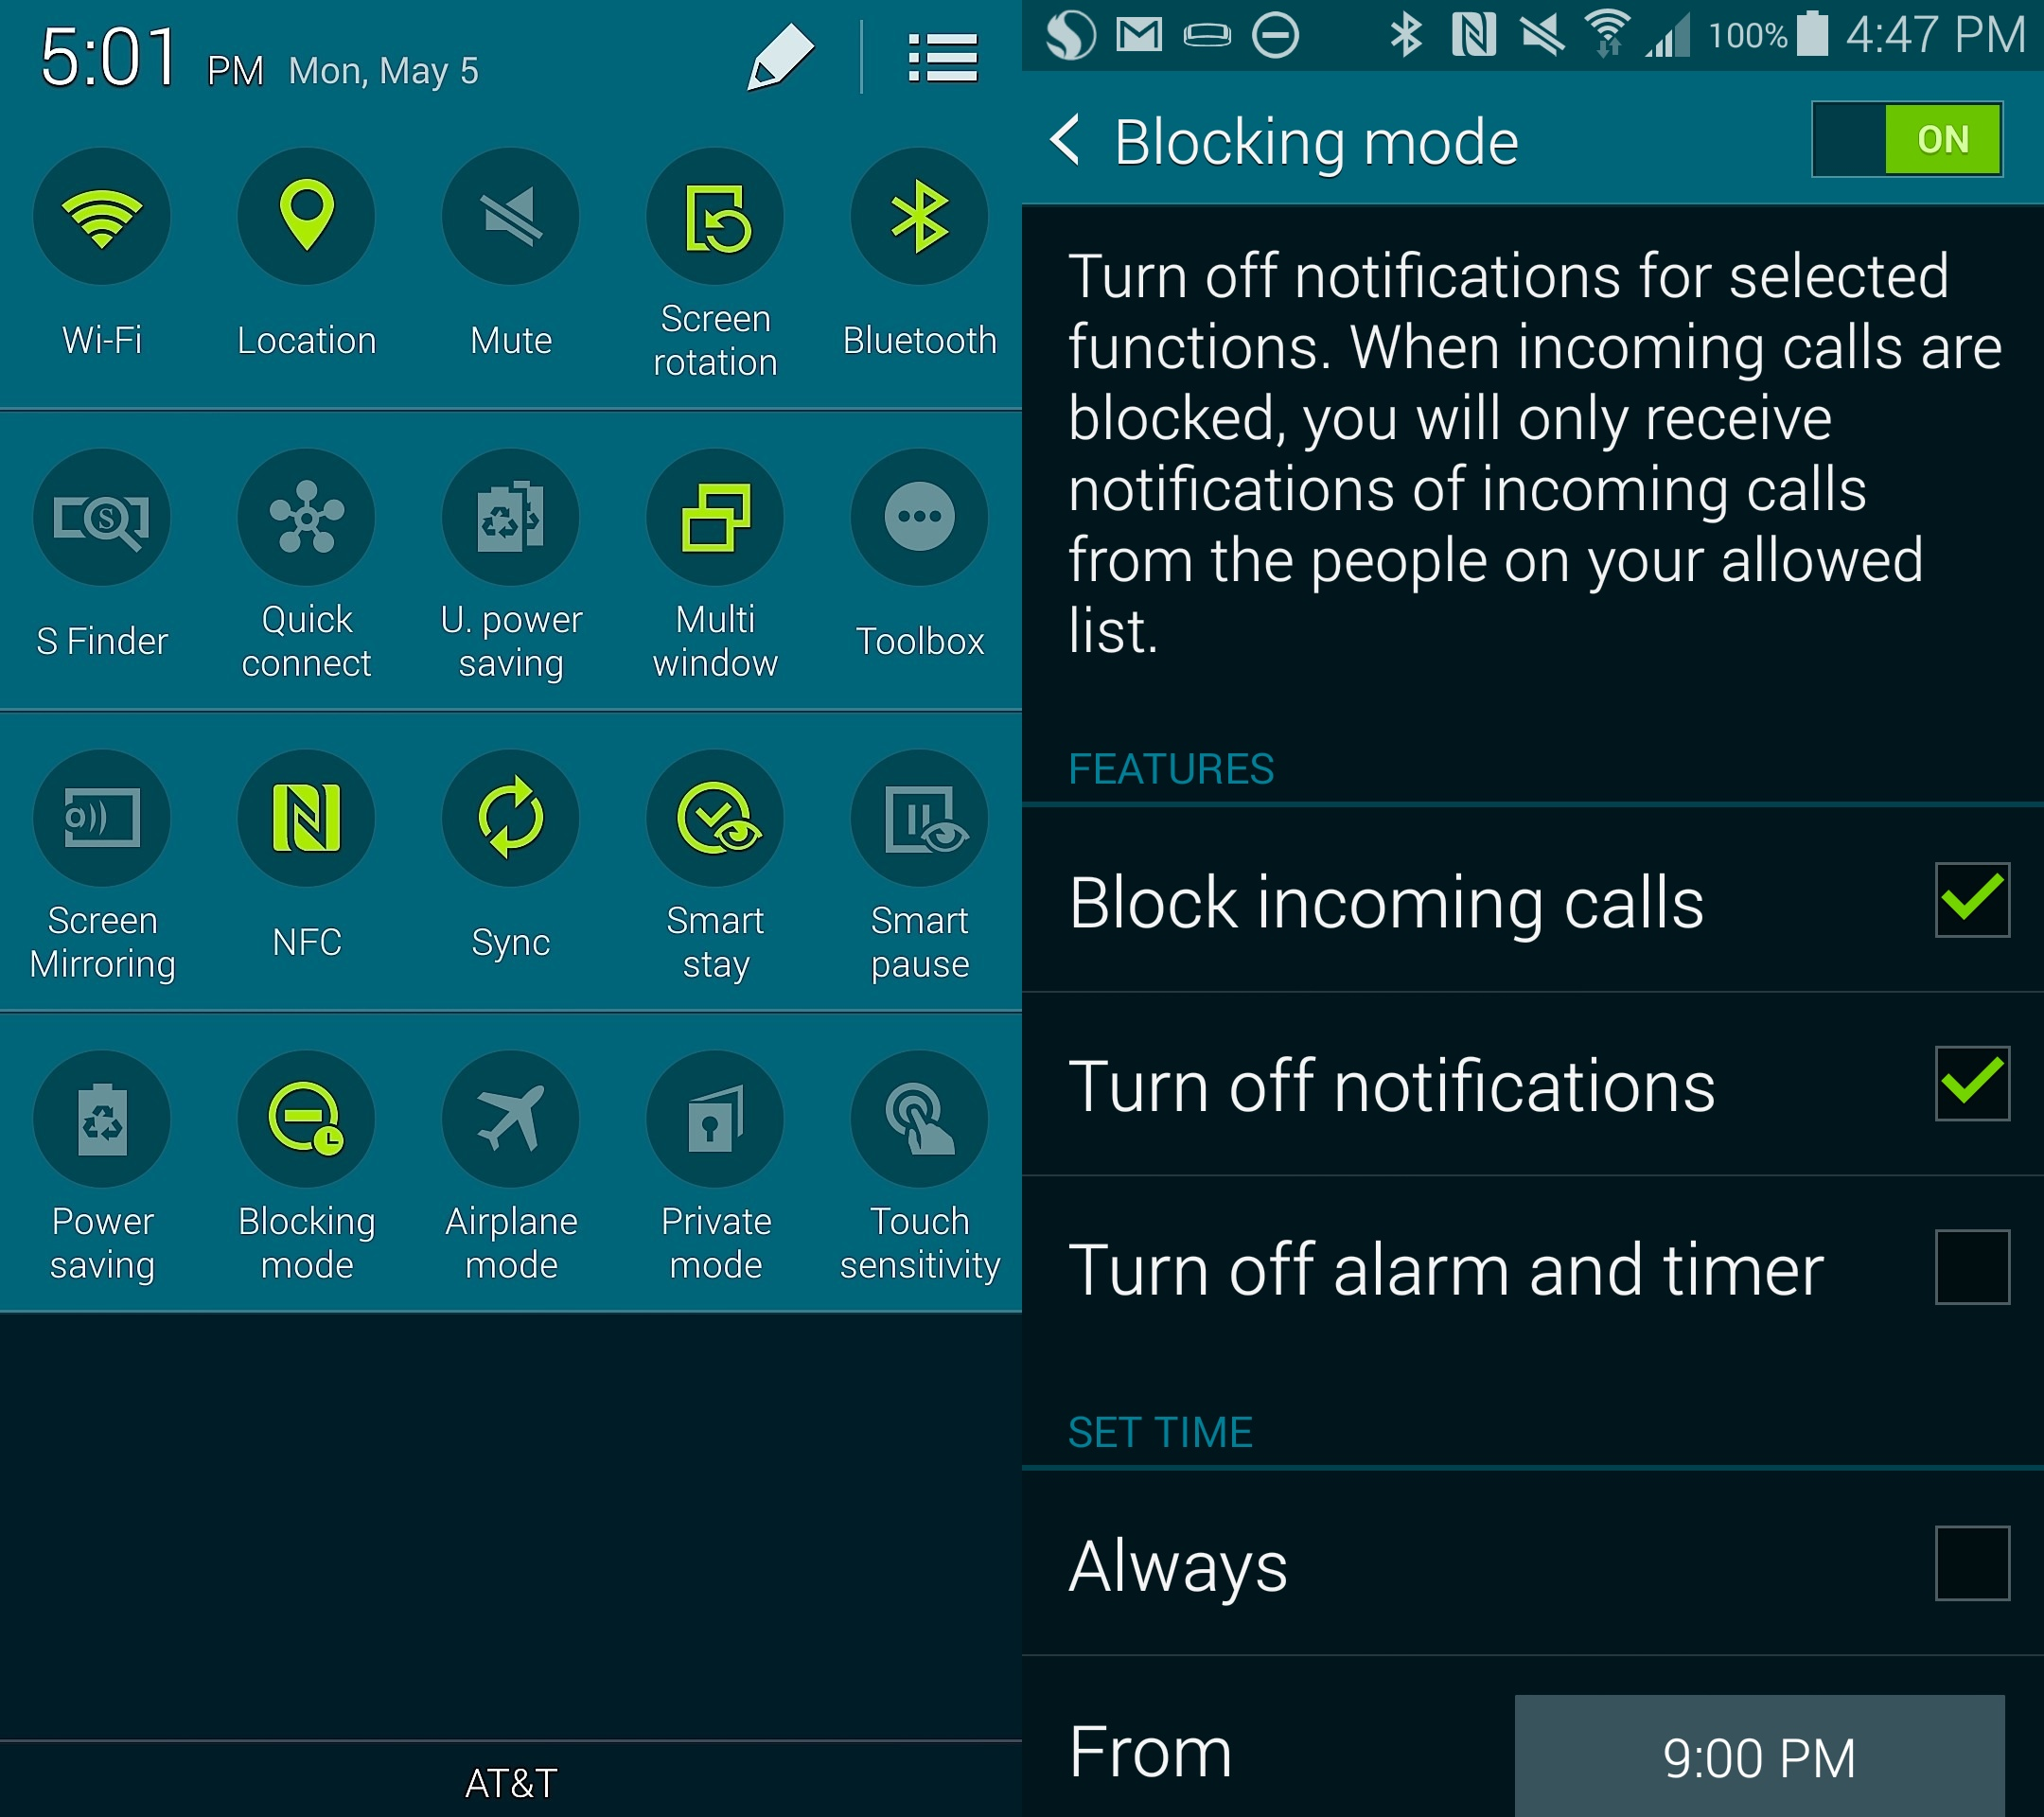 Here Is How To Set Up Blocking Mode On The Samsung Galaxy S5